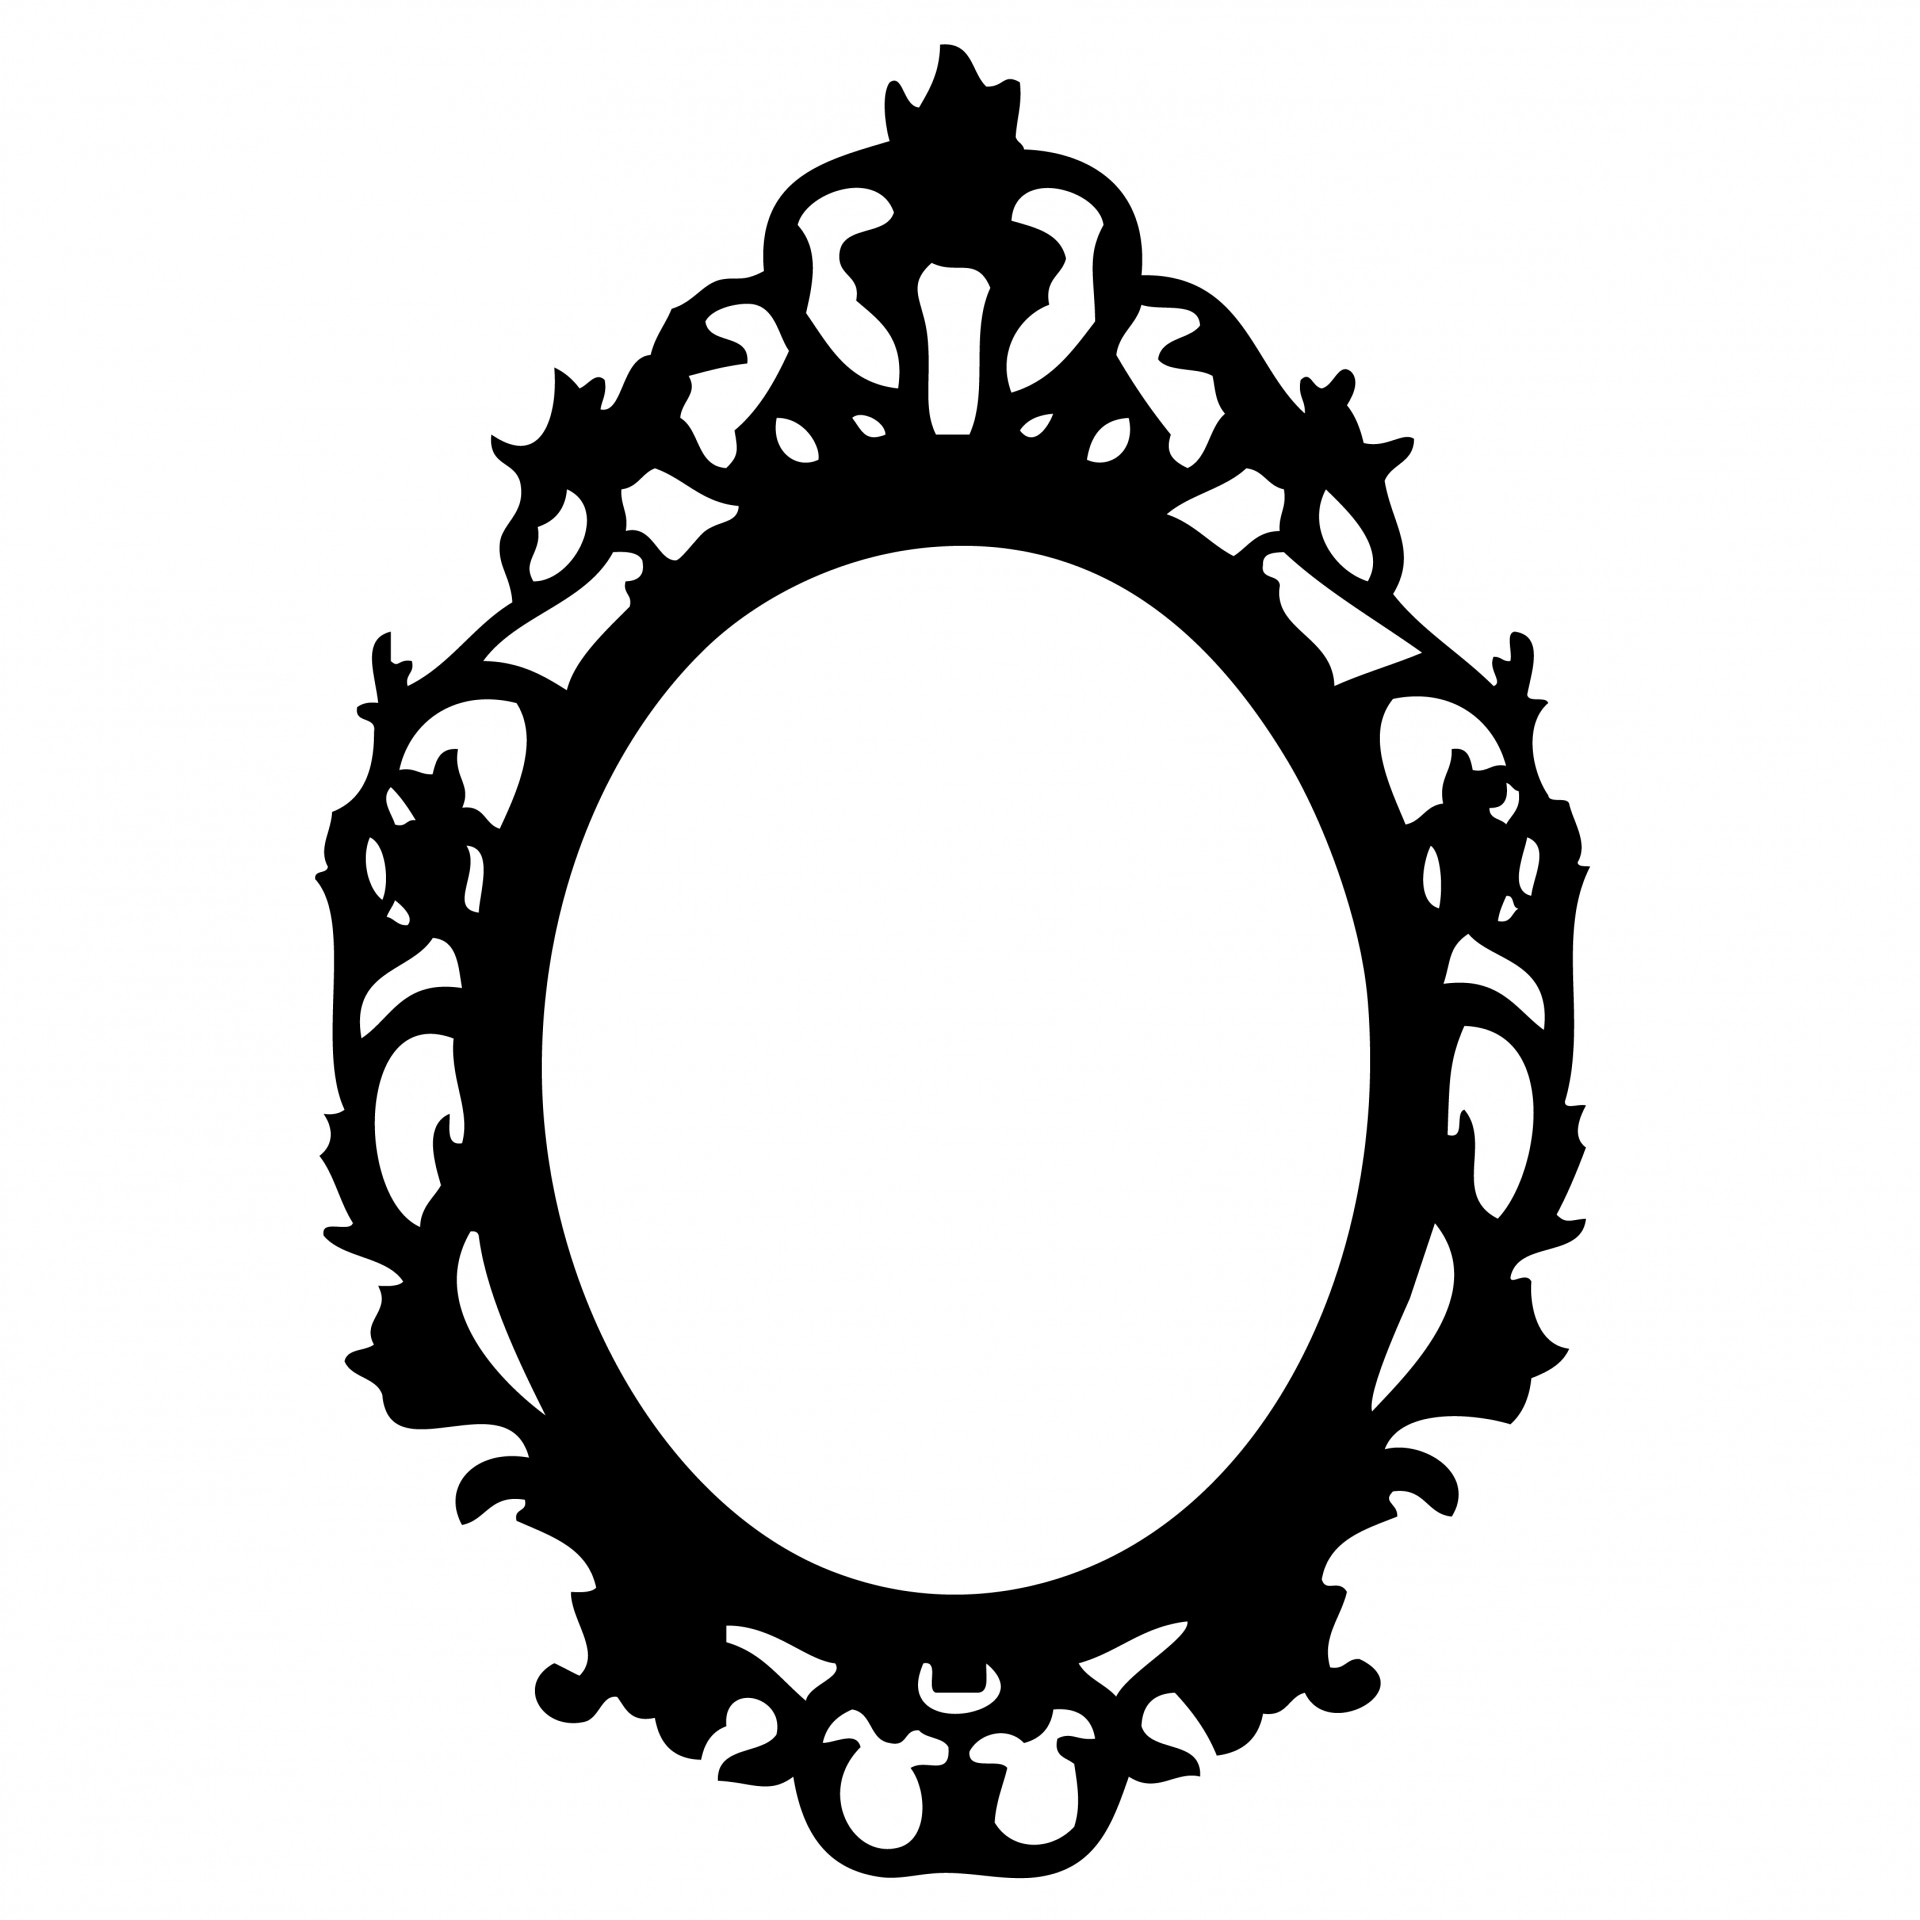 Ornate Black Frame Clipart Free Stock Photo